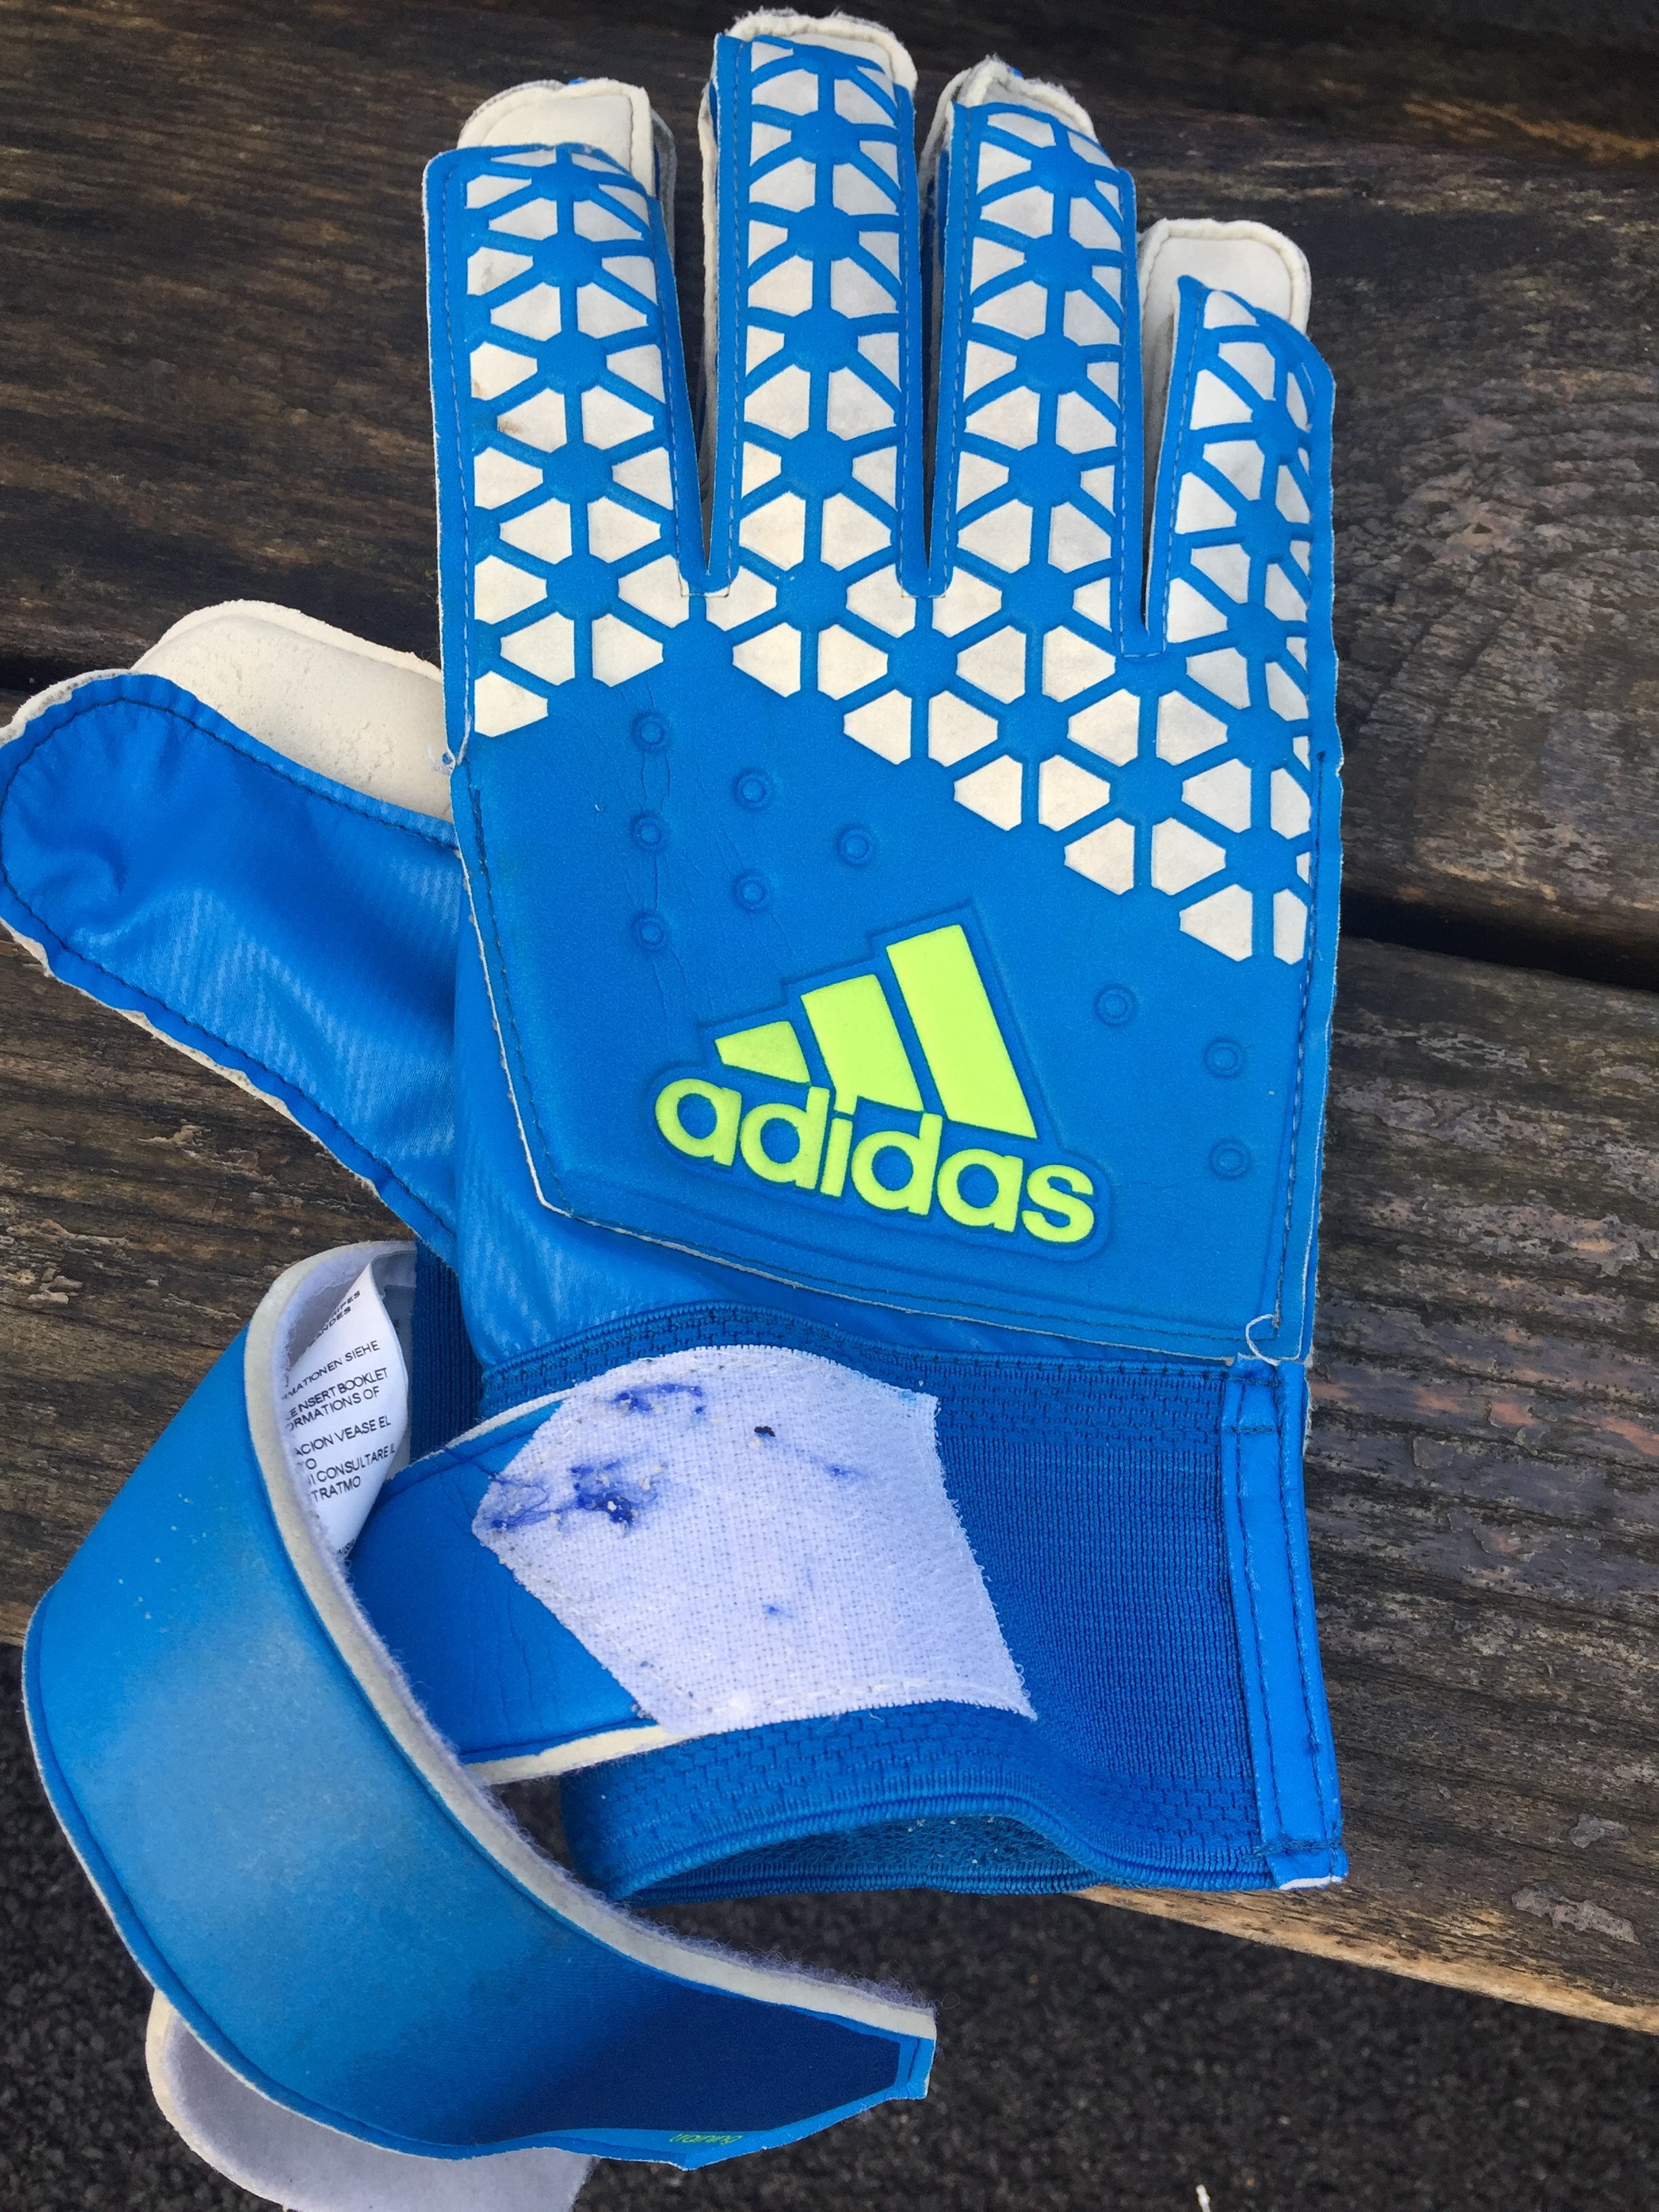 Award-winning goal keeping gioves, coming to an ebay near you!